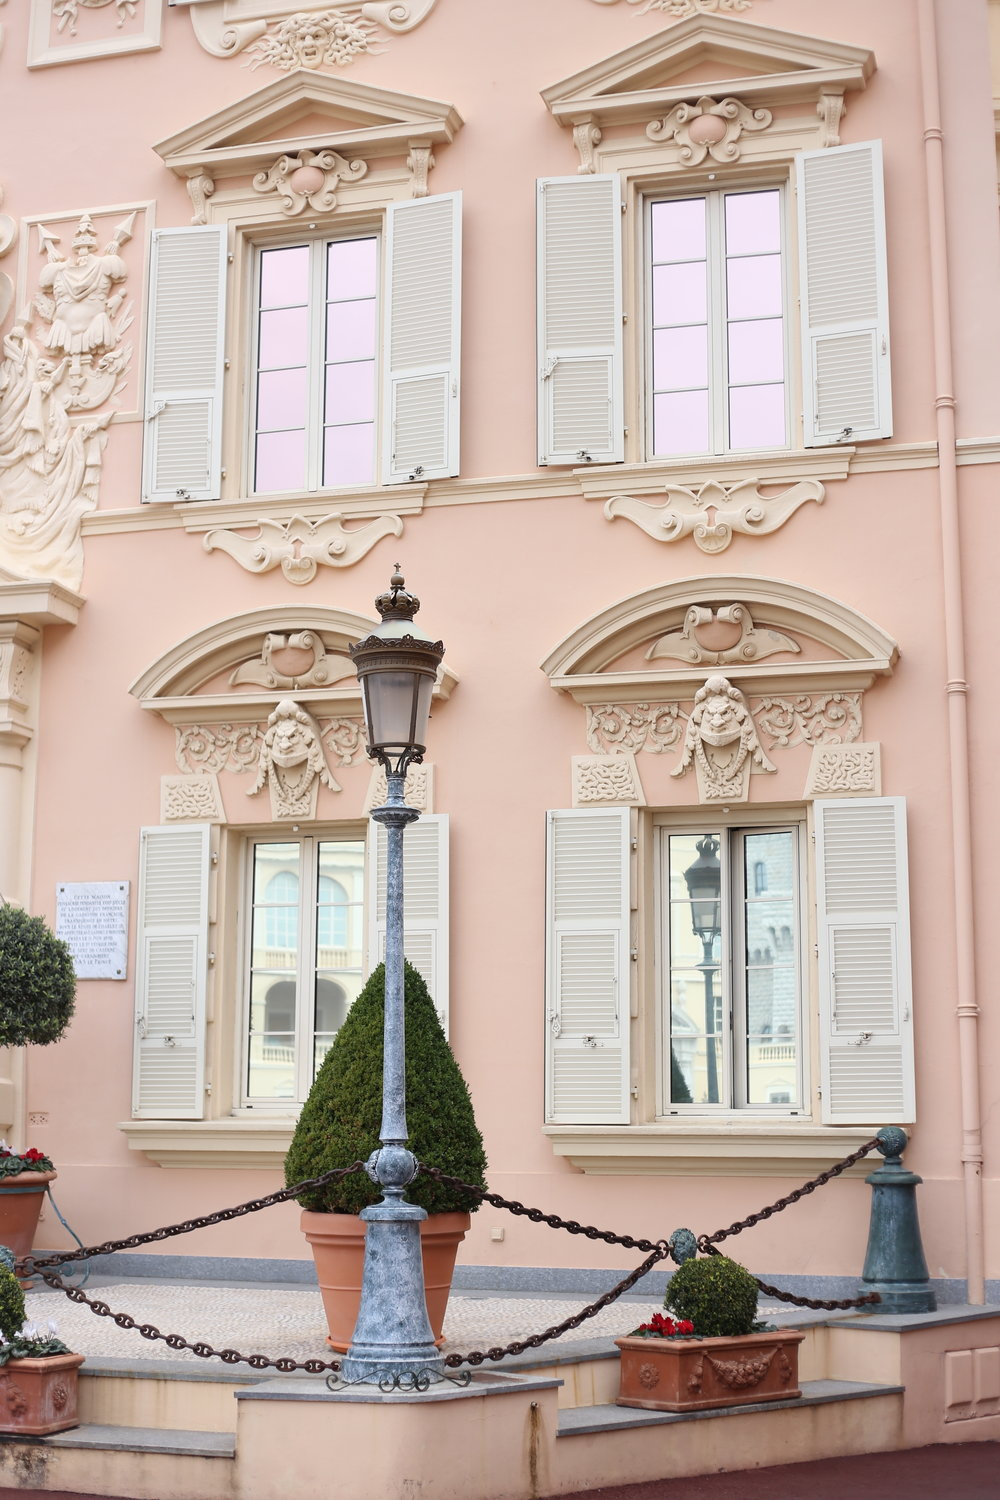 Pink candy houses - such perfect apartments on the royal hilltop of Monaco.